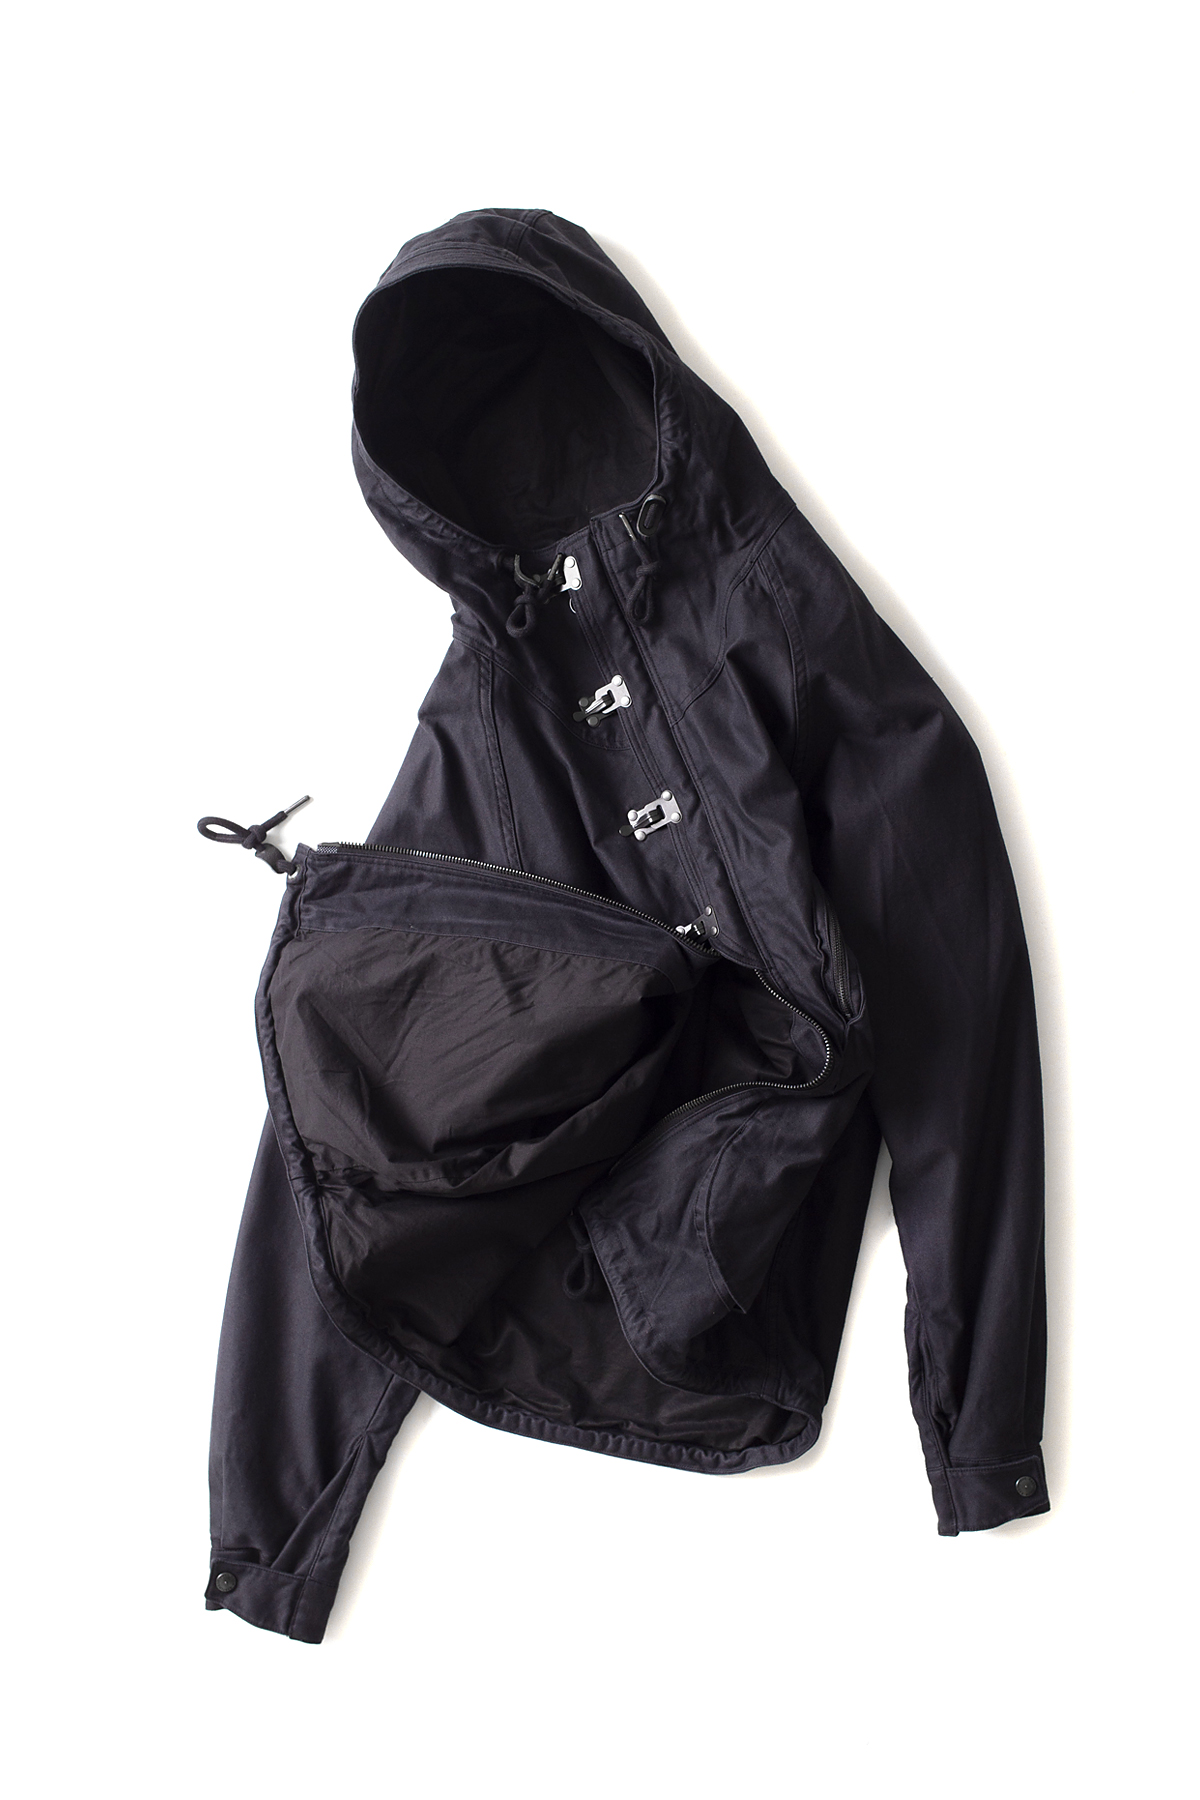 Eastlogue : Deck Parka (Black)